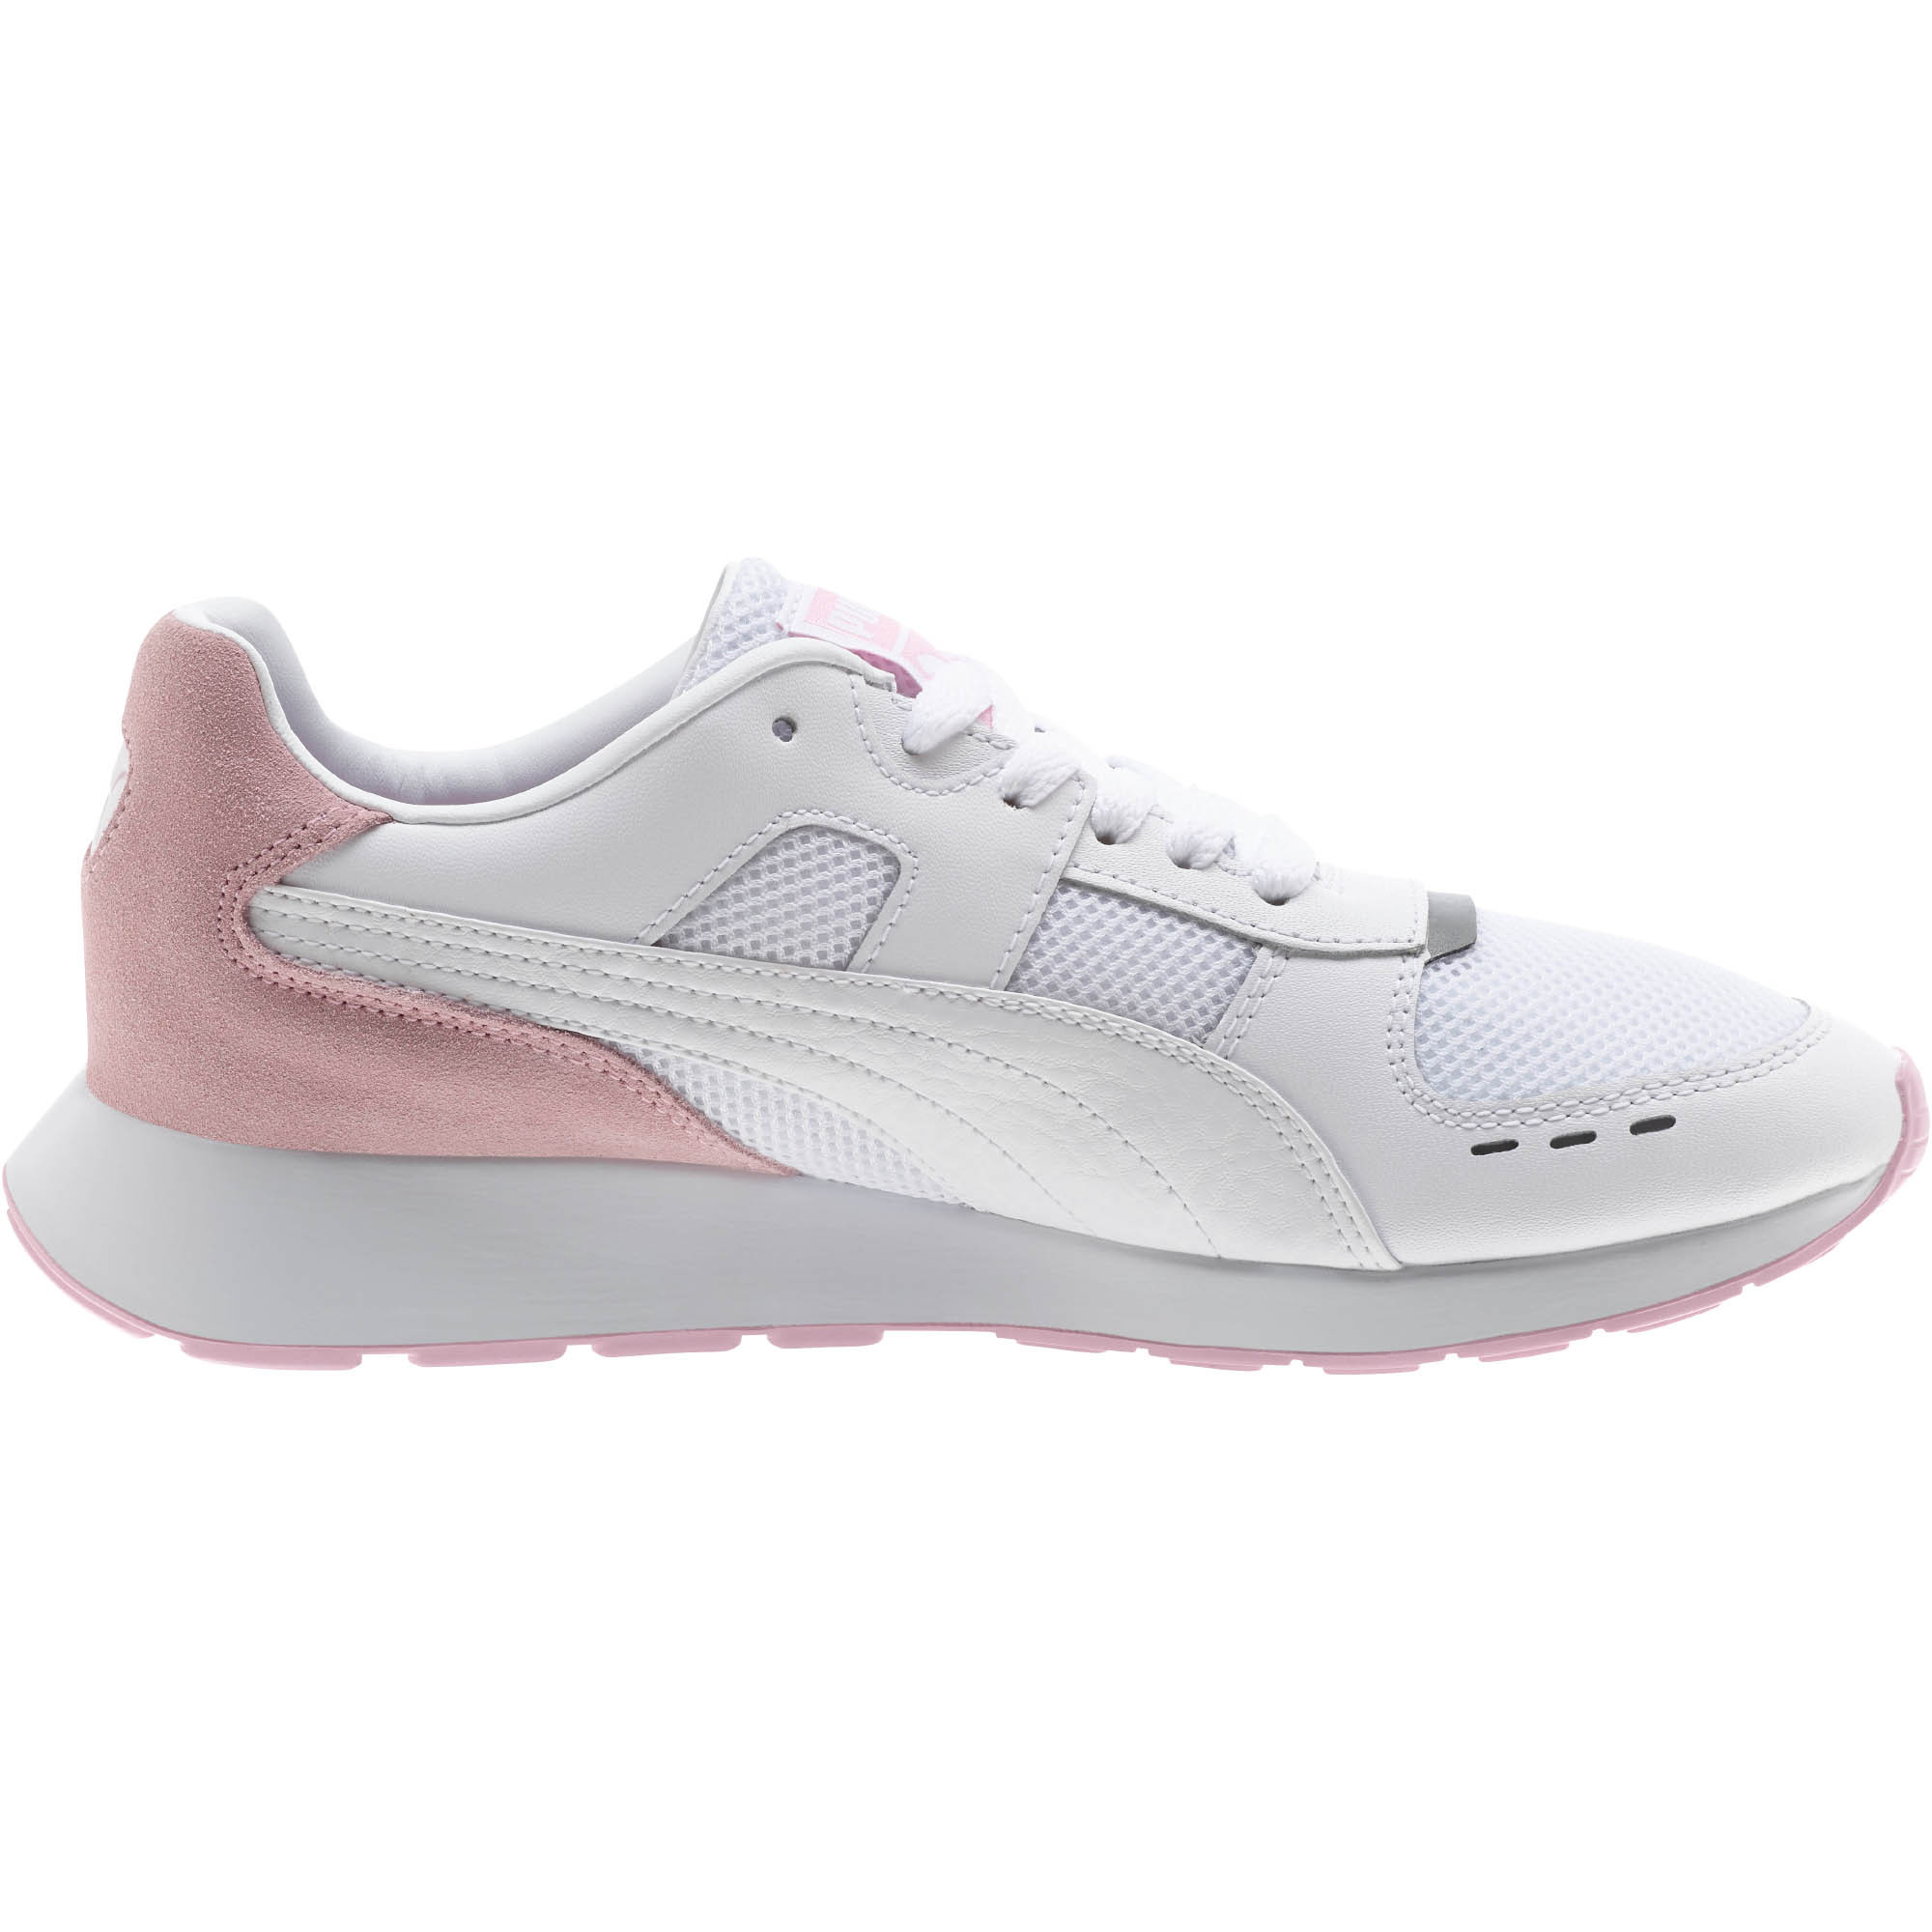 PUMA-Women-039-s-RS-150-Contrast-Sneakers thumbnail 5